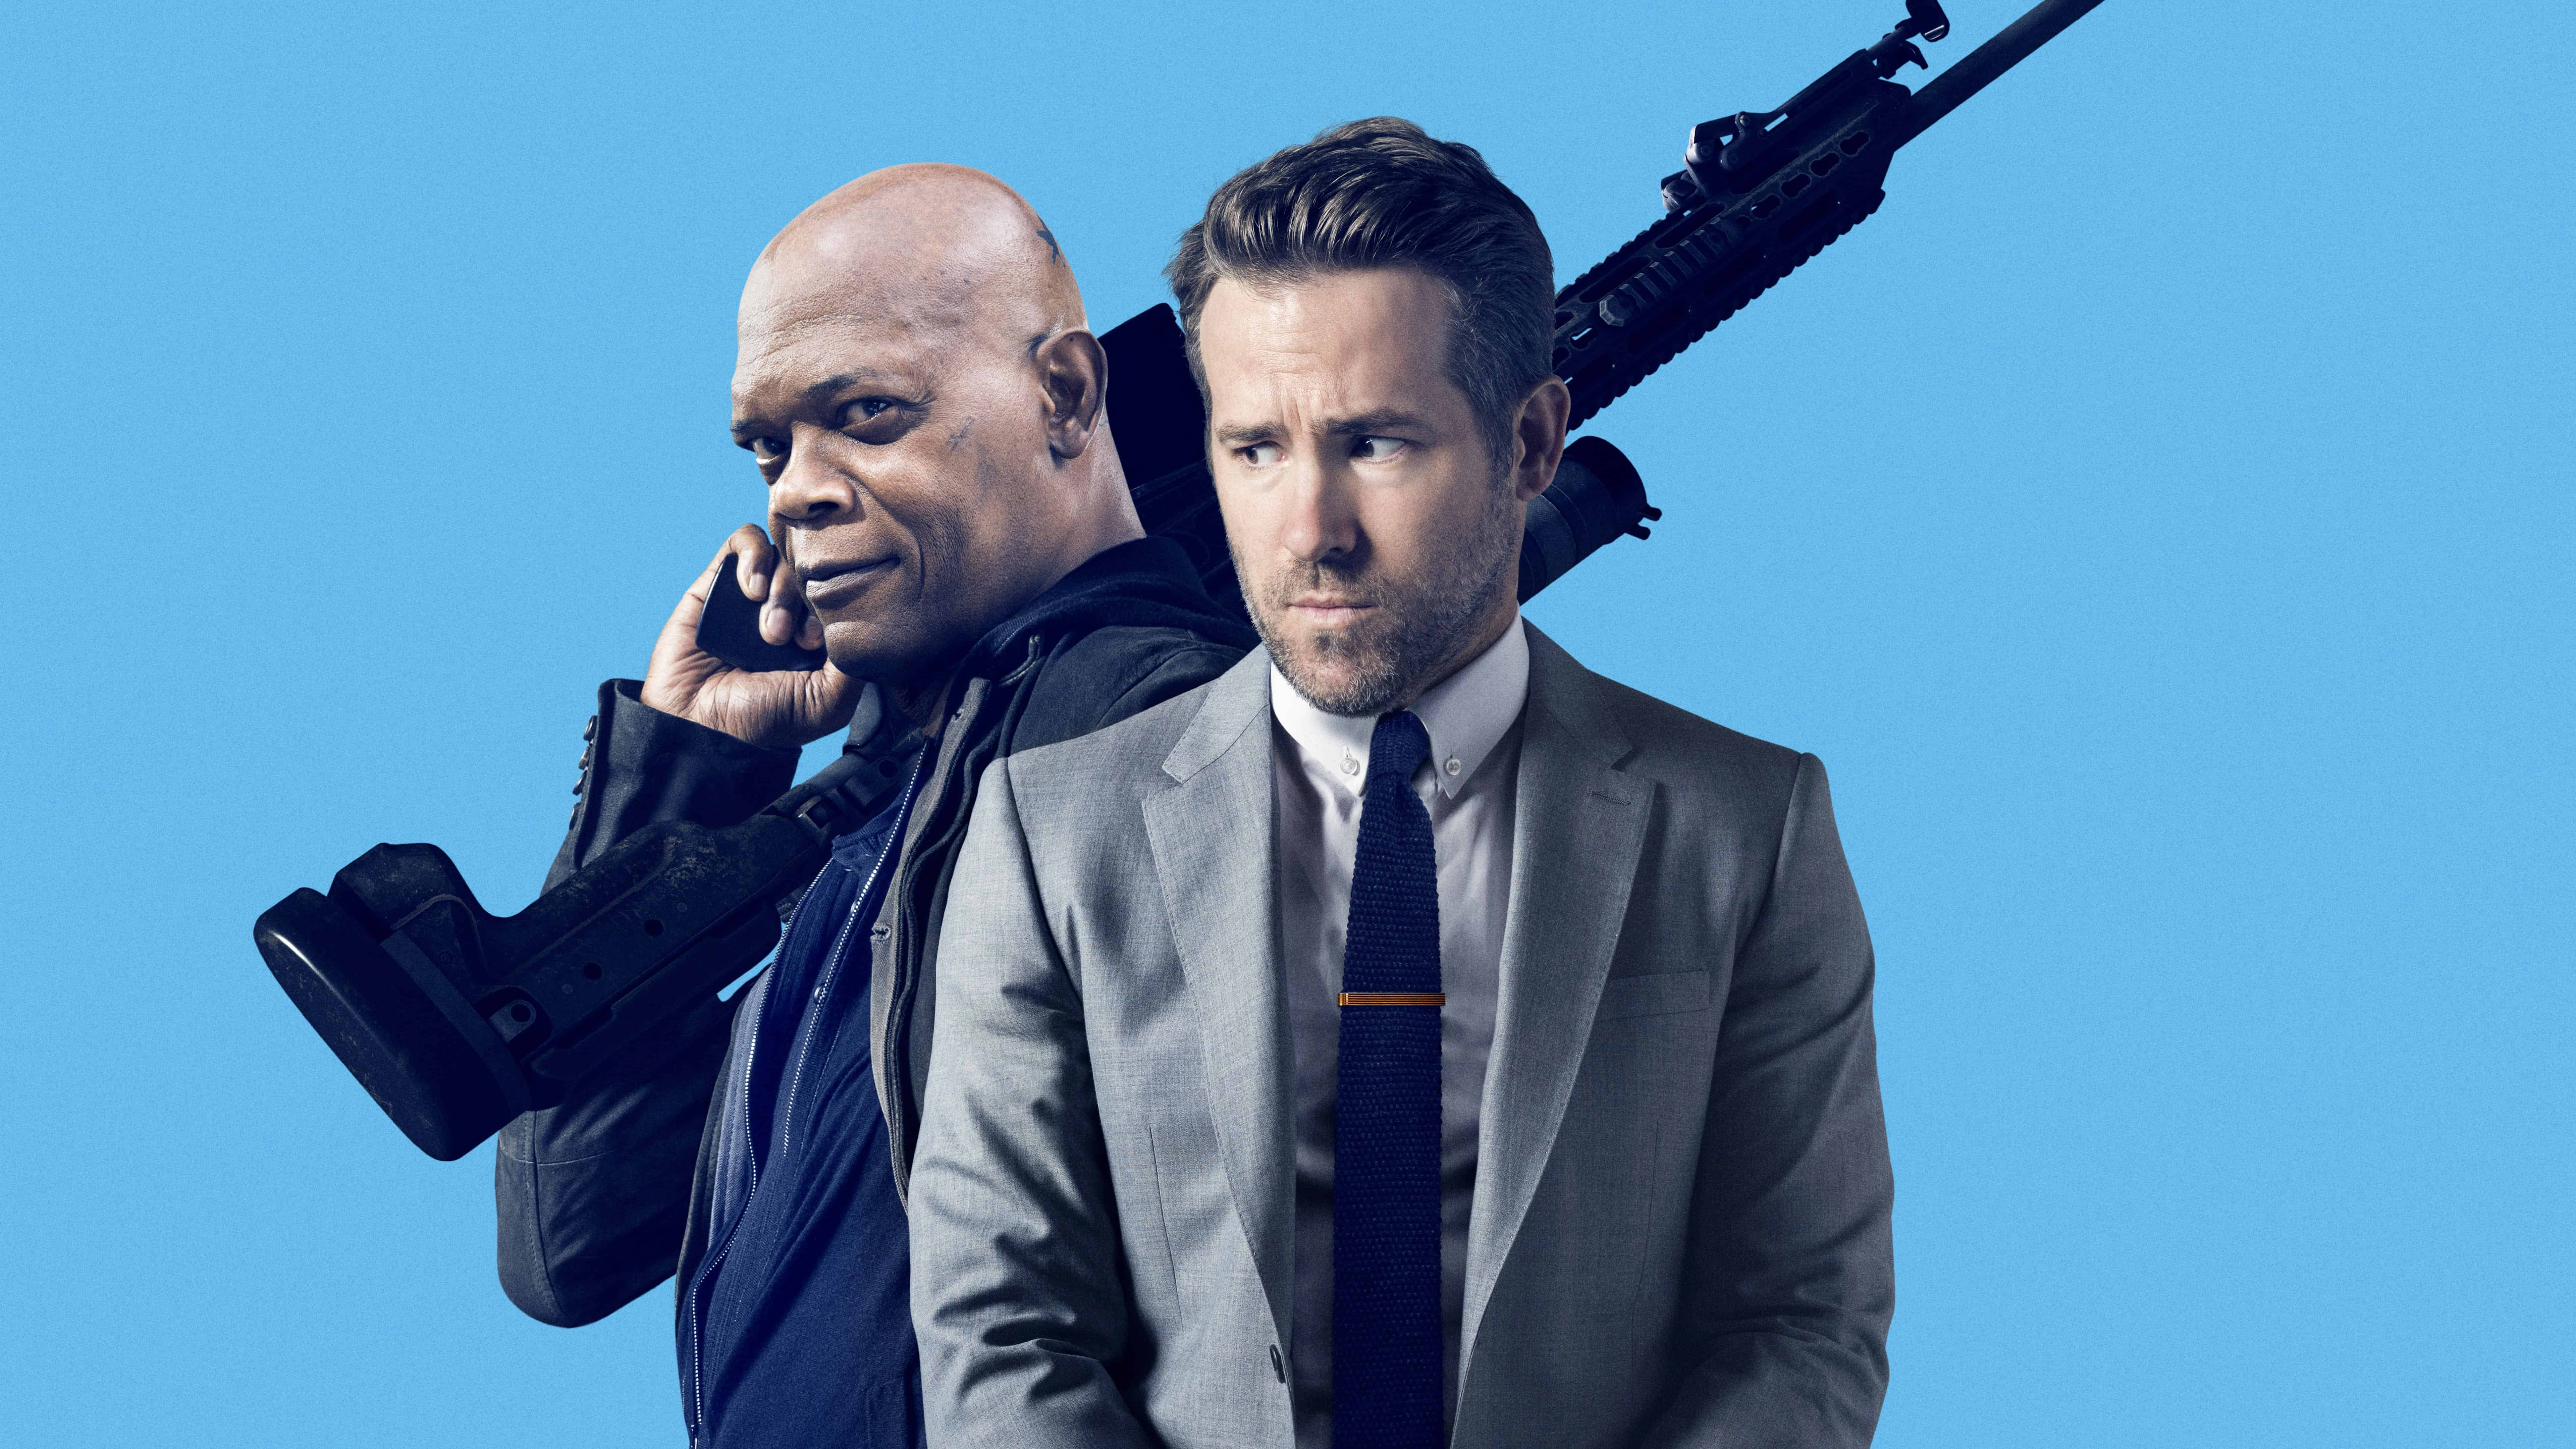 the hitmans bodyguard ryan reynolds and samuel l jackson uhd 8k wallpaper